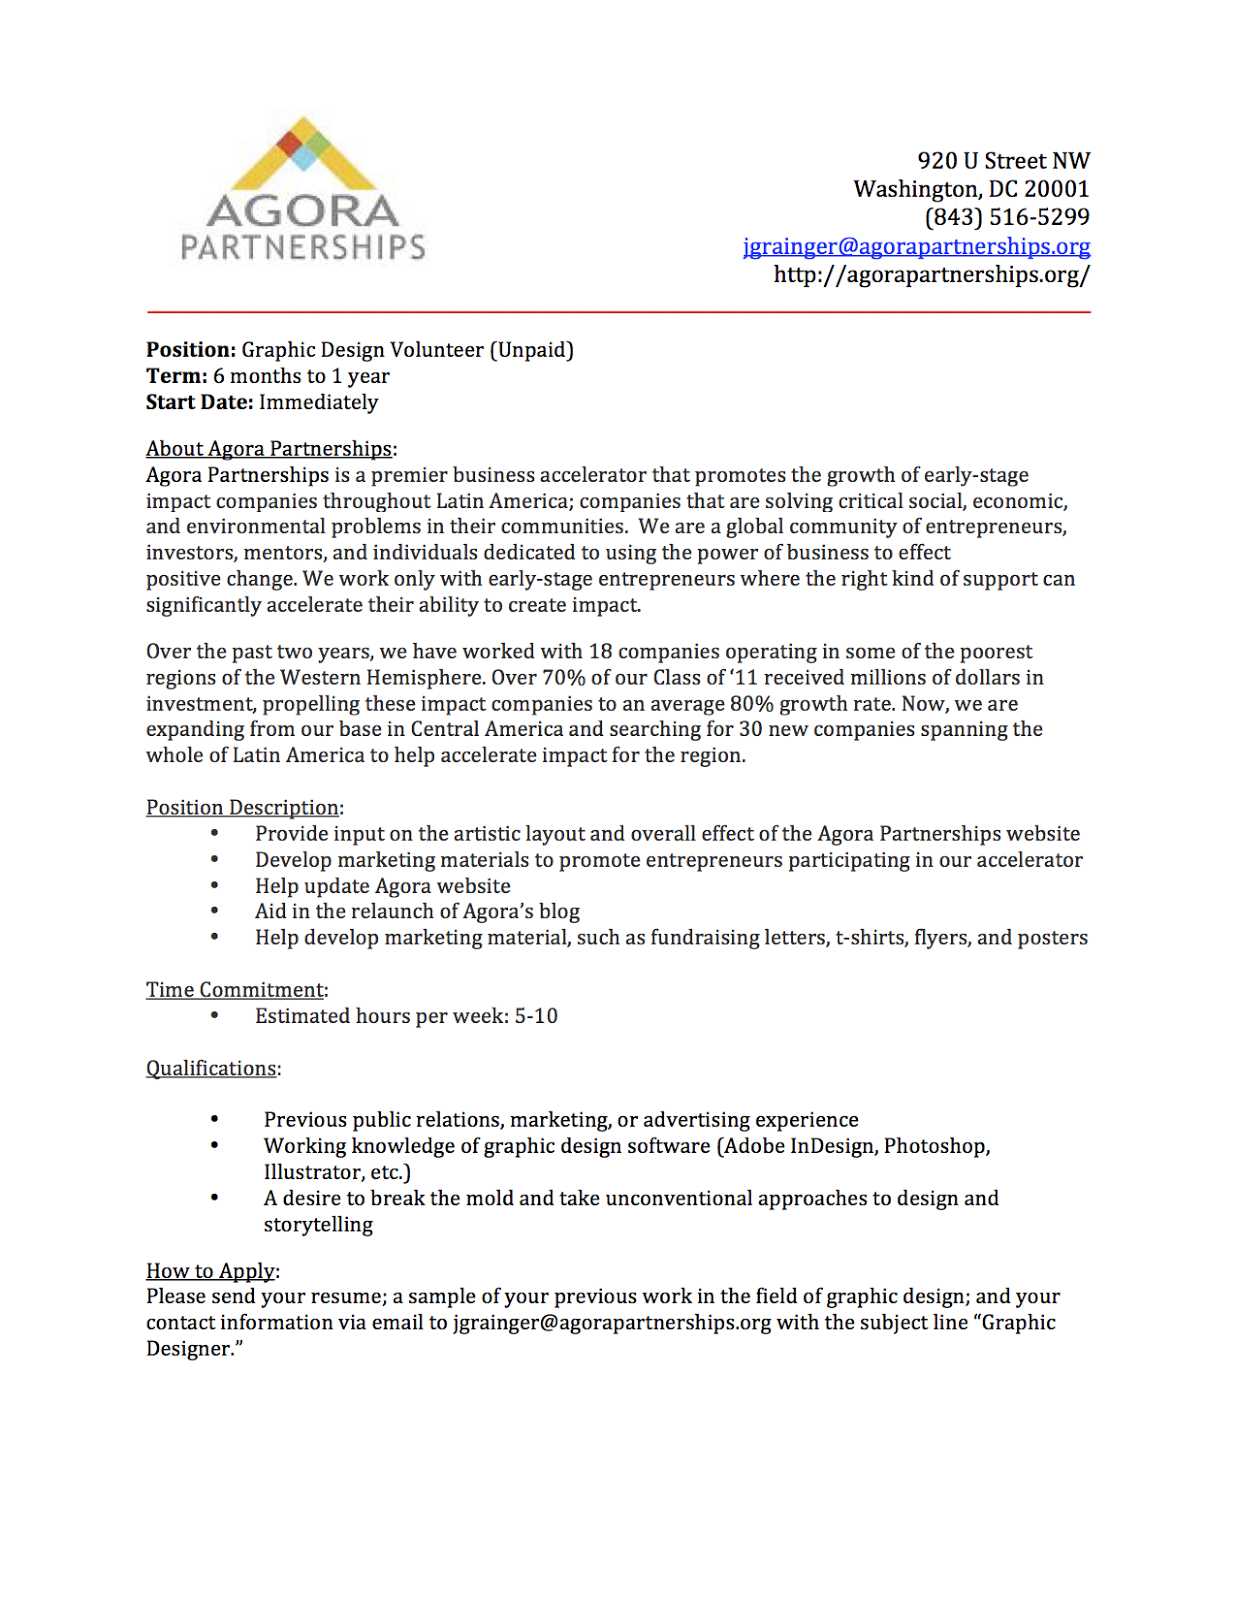 Cover letter of graphic design sample – Internship Cover Letter